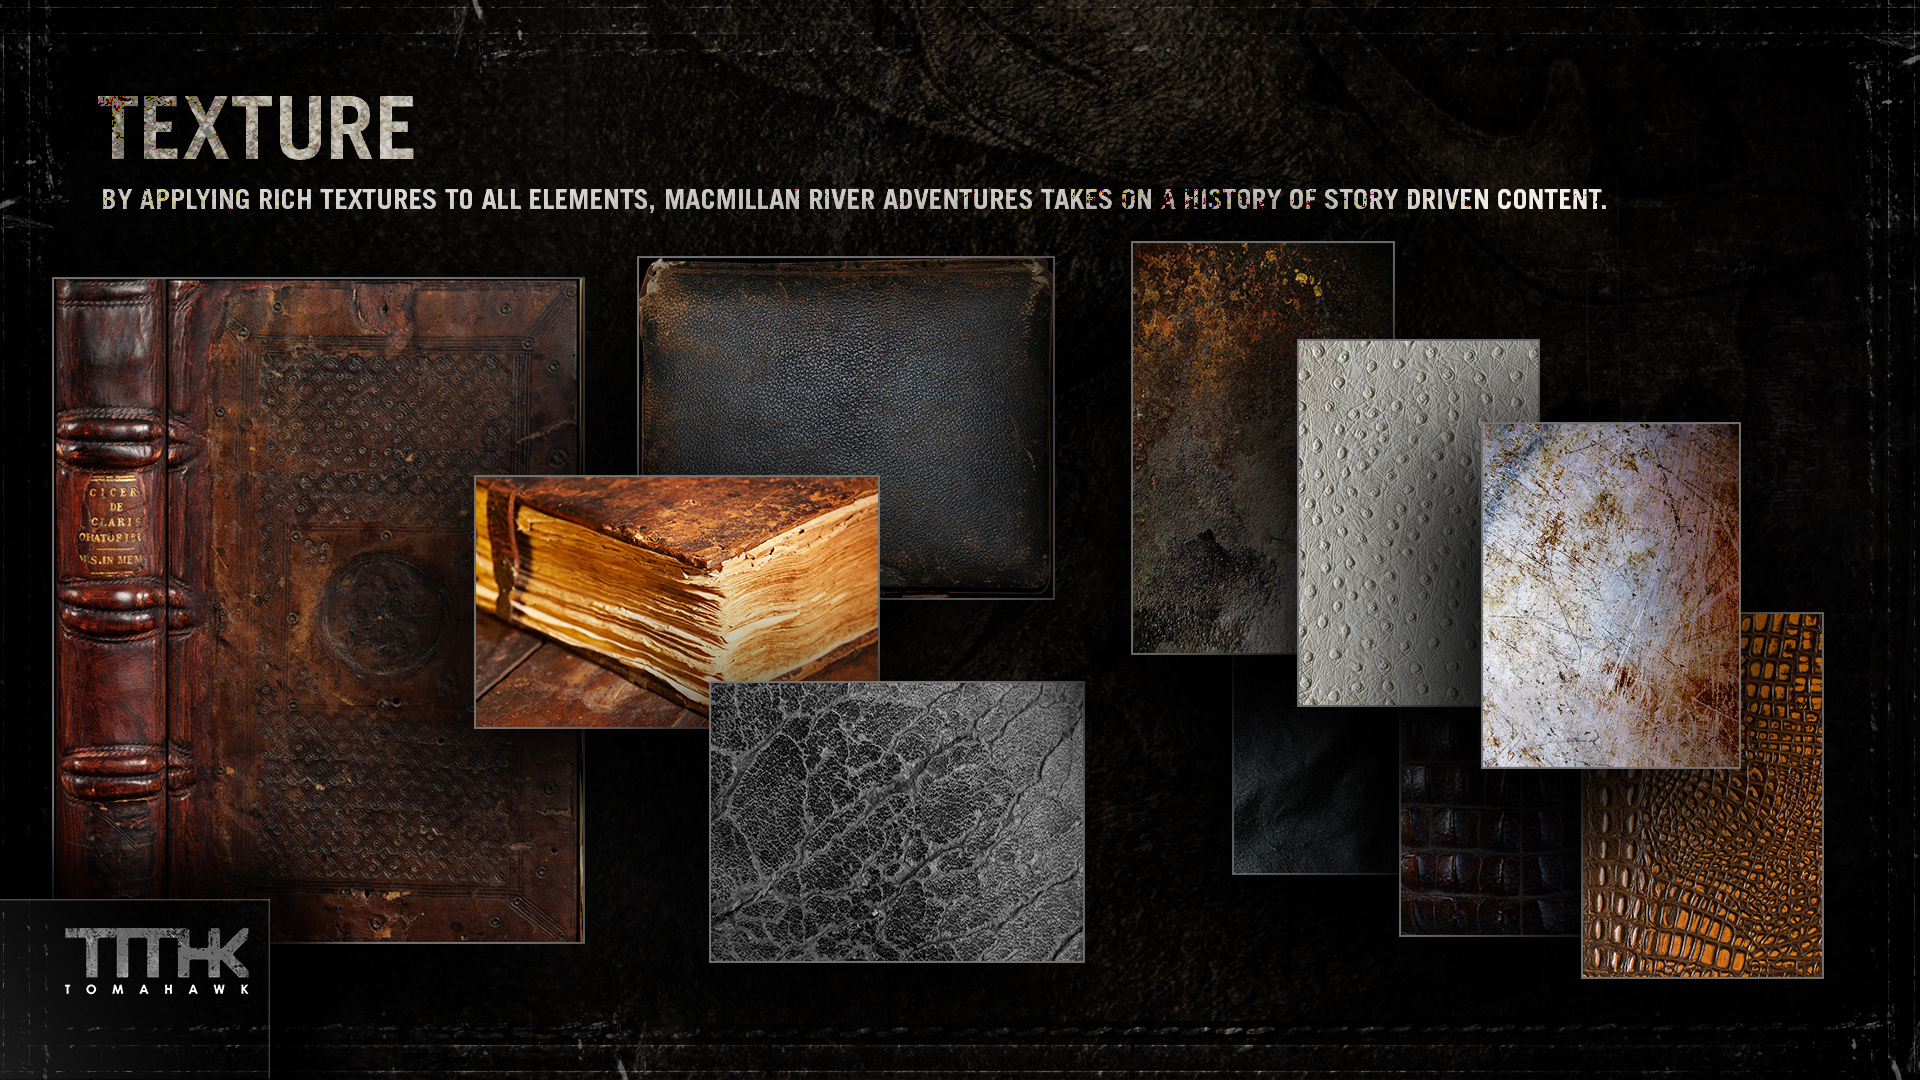 06_MRA 2014 Show Package_MoodBoard_Texture_01.jpg